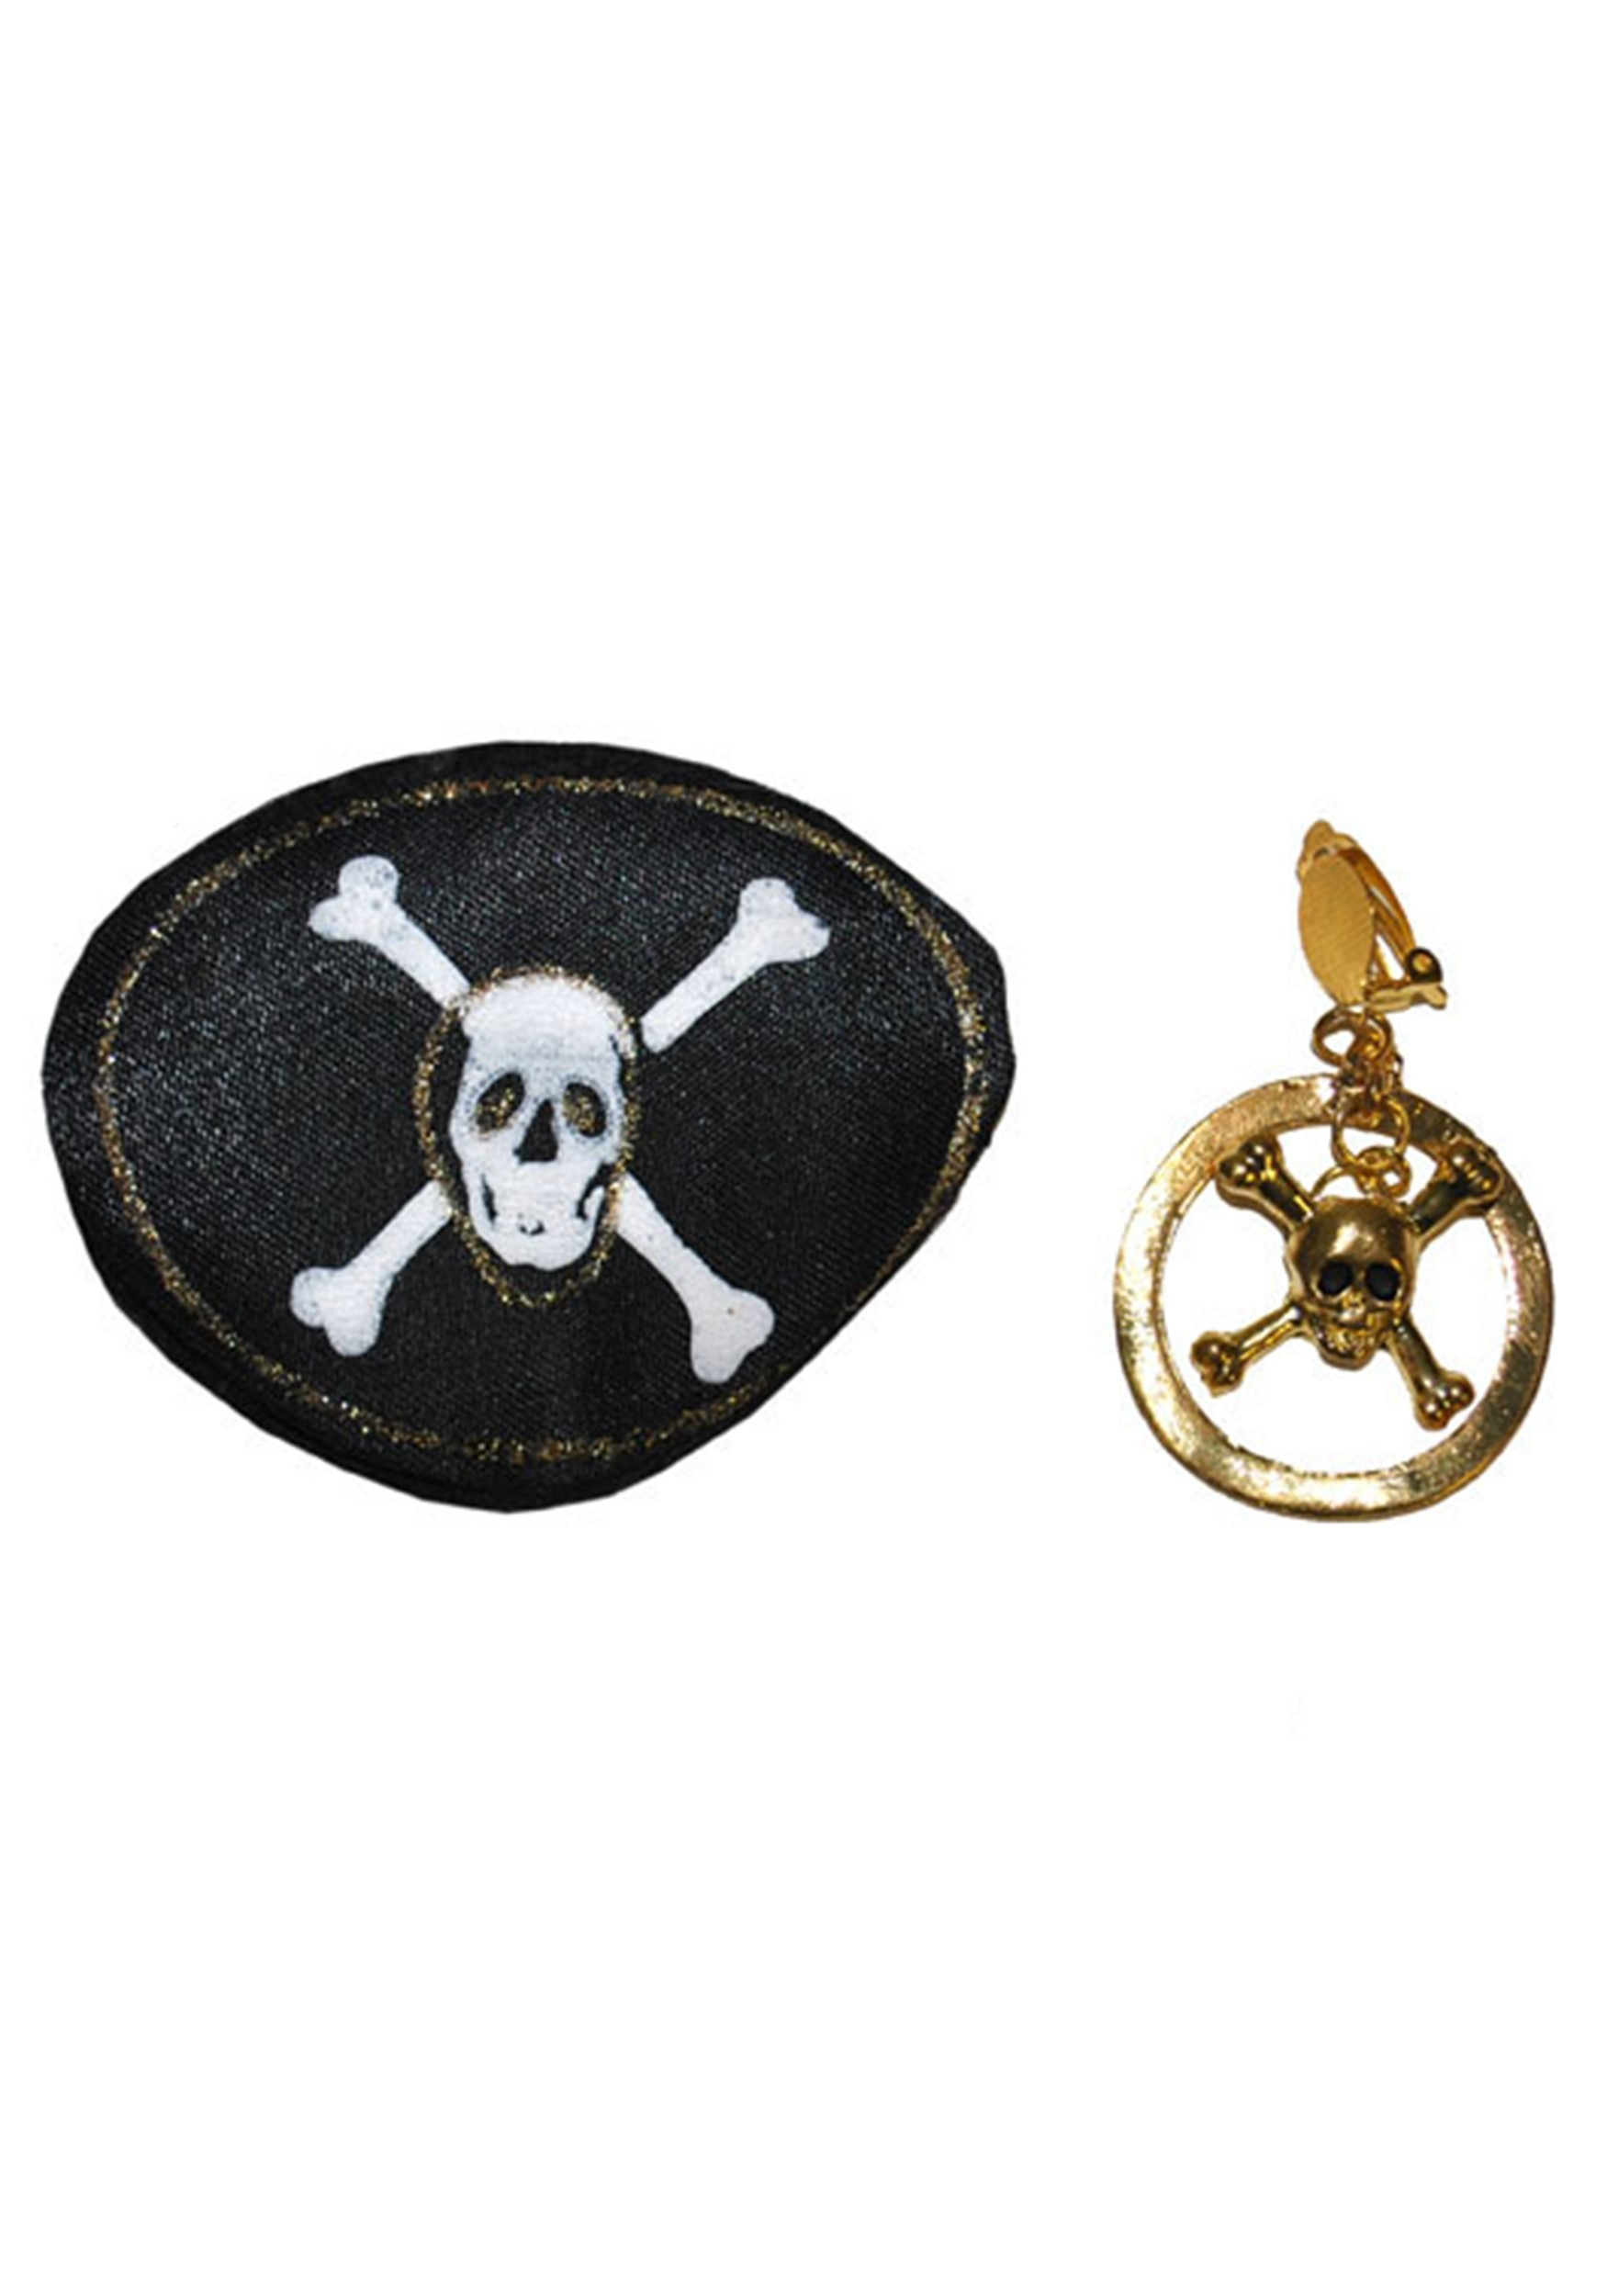 Pirate Eyepatch and Earring Accessories